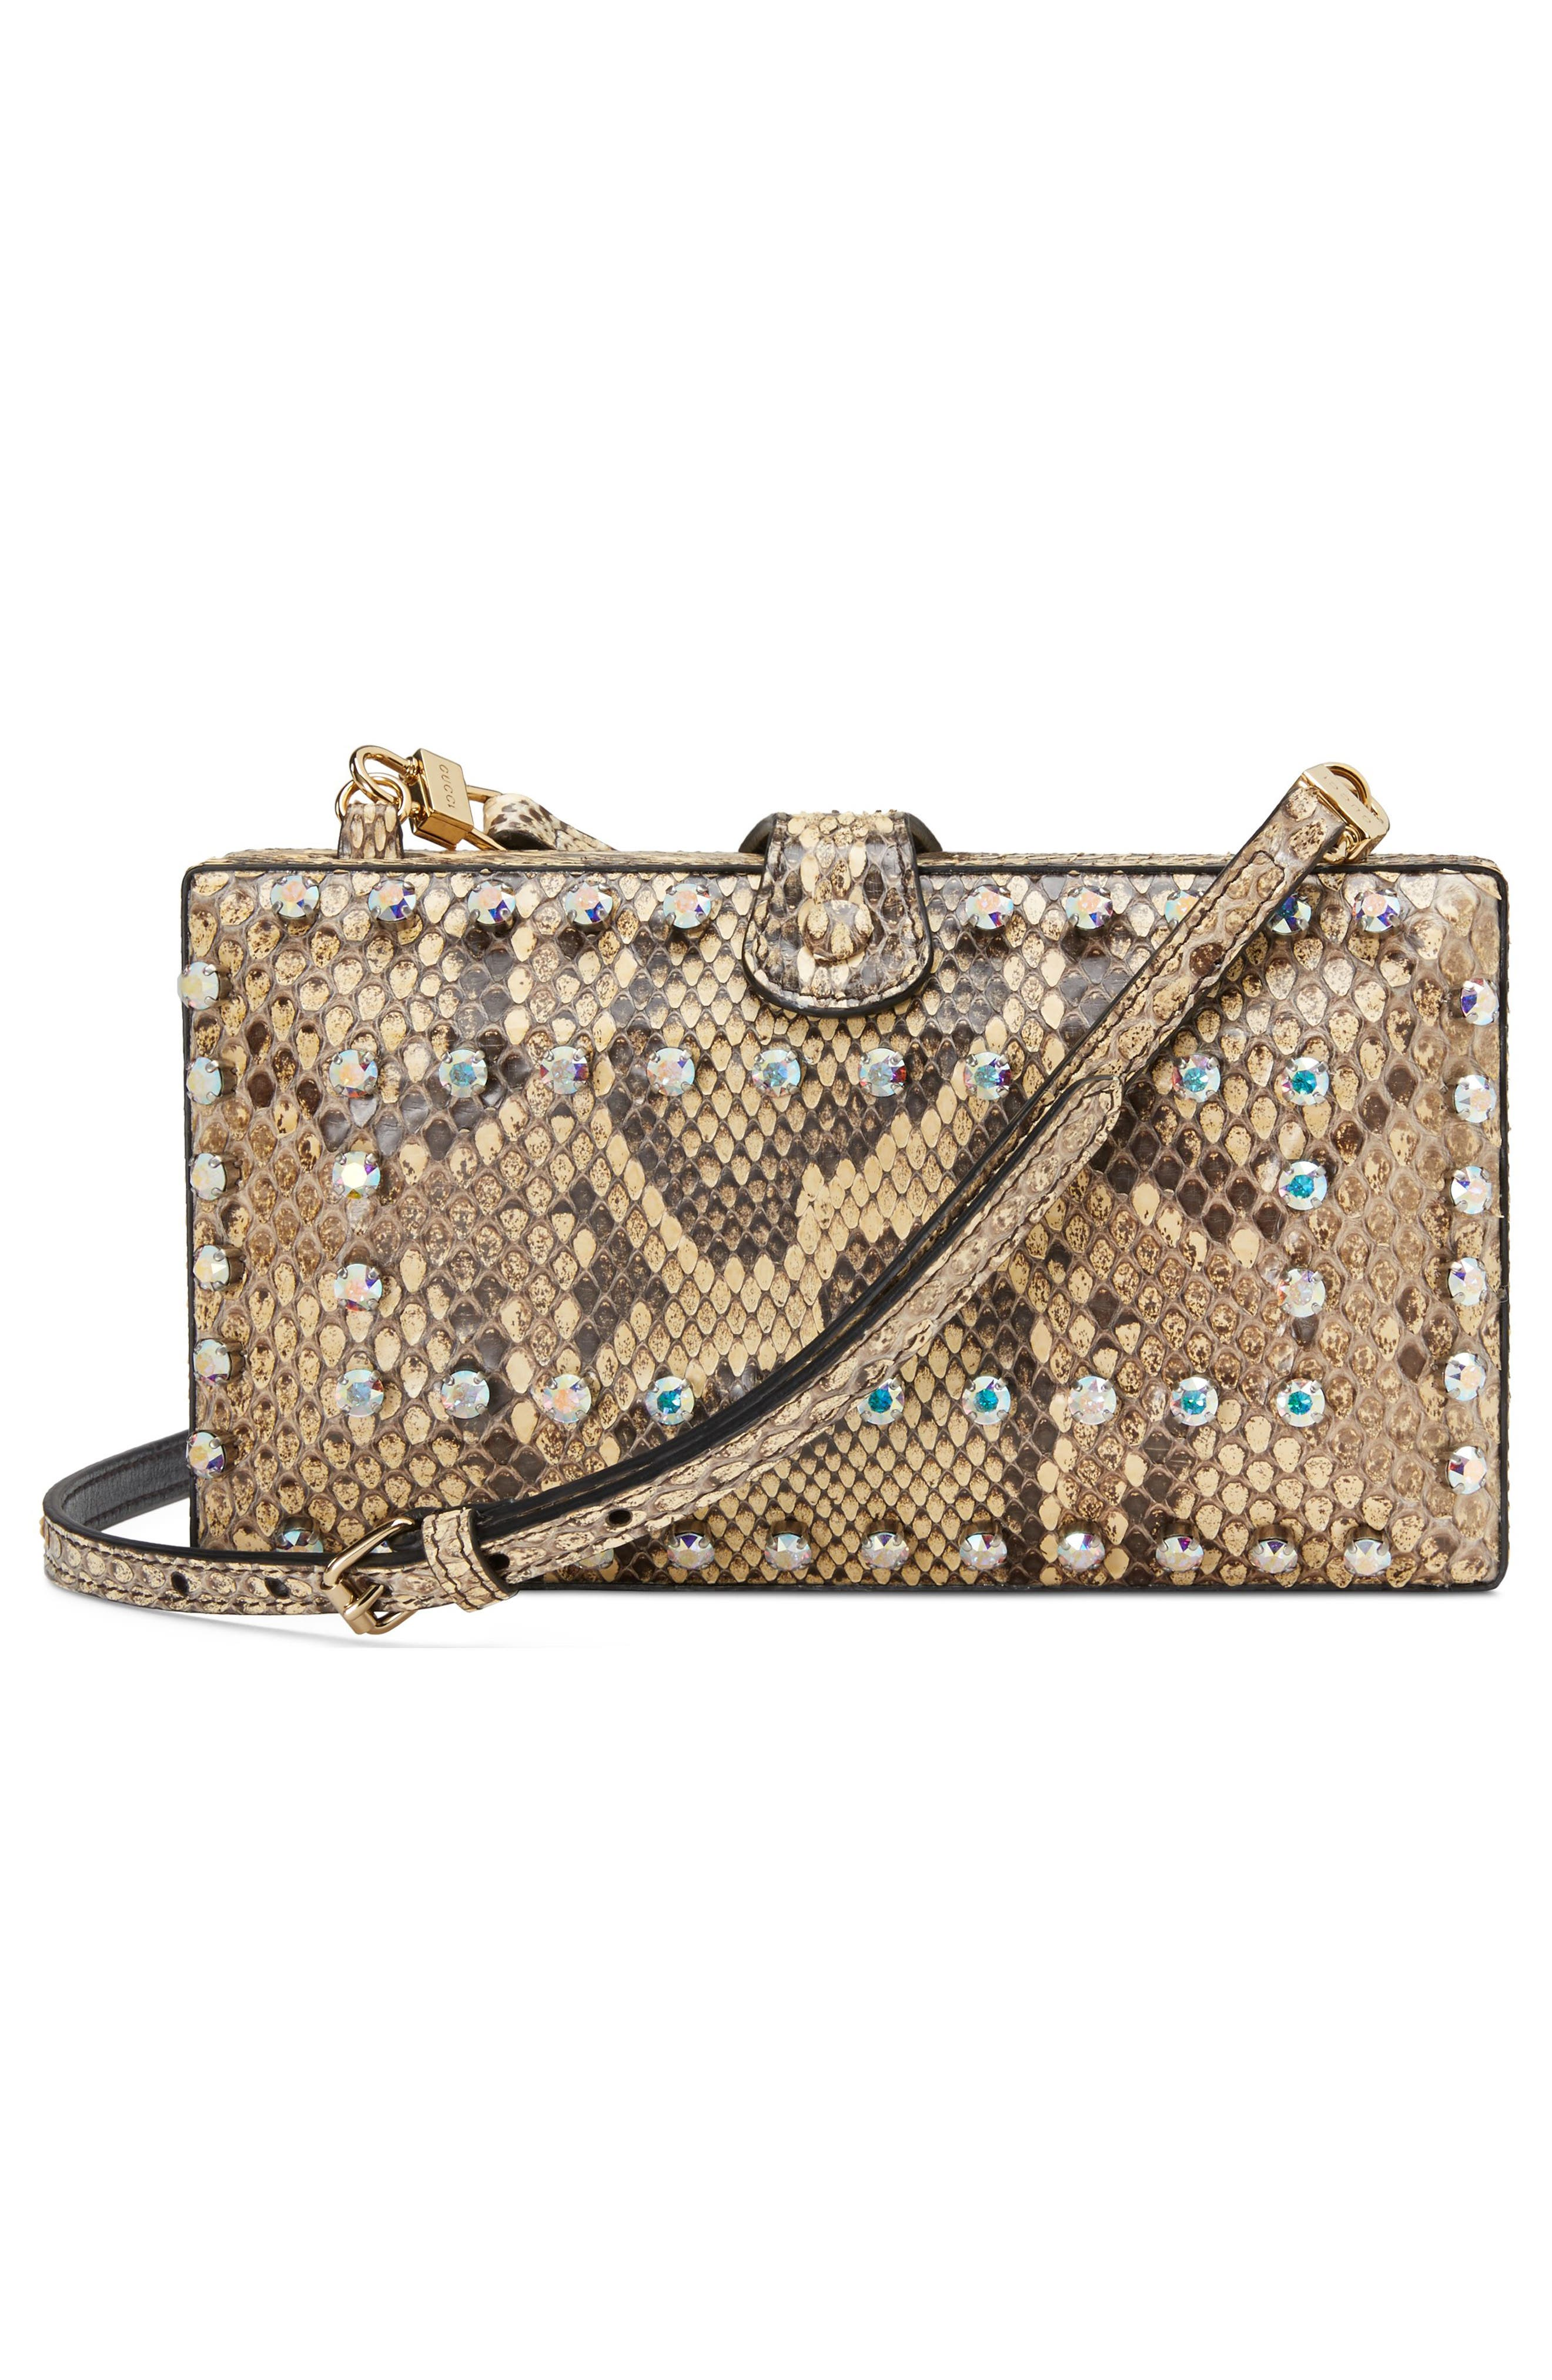 Broadway Genuine Python Minaudière,                             Alternate thumbnail 2, color,                             BEIGE/ NATURAL YELLOW/ CRYSTAL